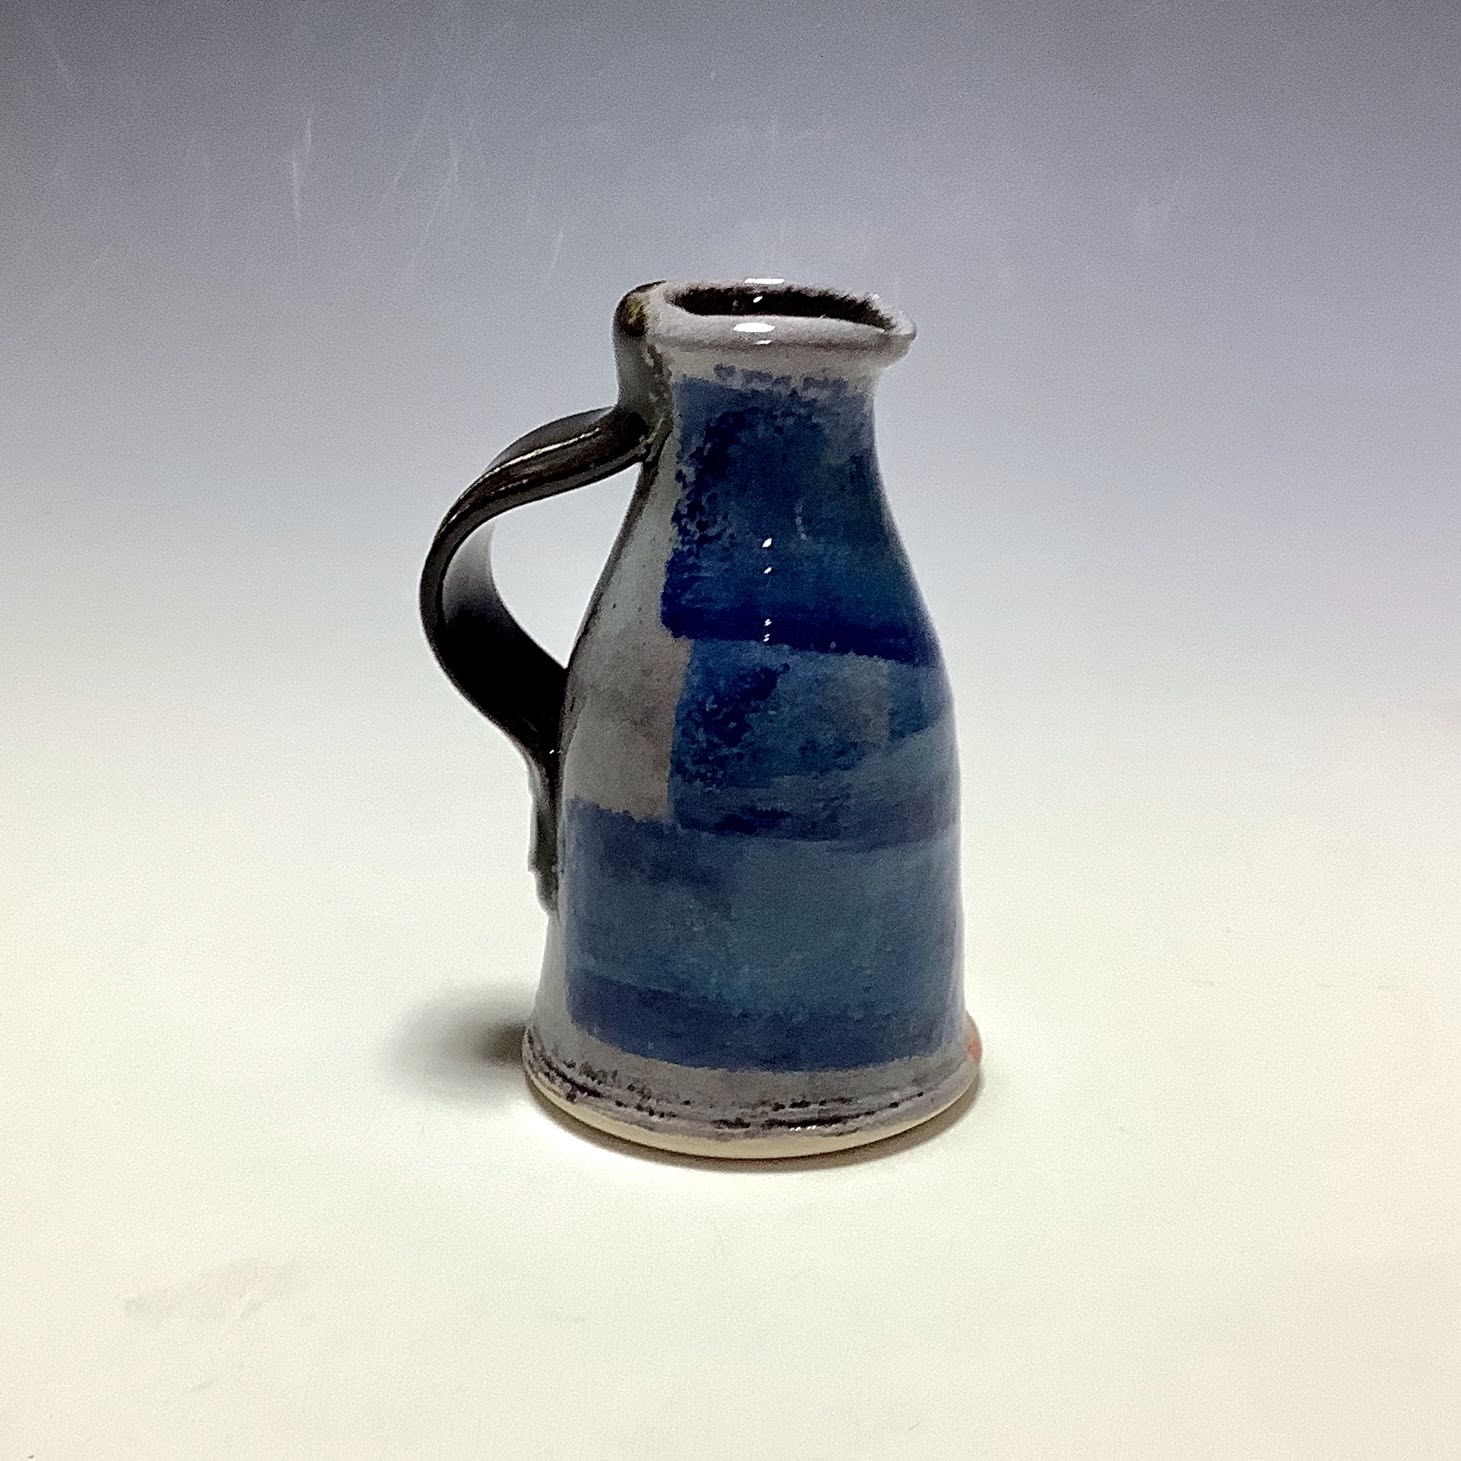 """<span class=""""link fancybox-details-link""""><a href=""""/artists/100-john-pollex/works/7842-john-pollex-small-jug-2021/"""">View Detail Page</a></span><div class=""""artist""""><strong>John Pollex</strong></div> <div class=""""title""""><em>Small Jug</em>, 2021</div> <div class=""""signed_and_dated"""">impressed with the artist's seal mark 'JP'</div> <div class=""""medium"""">white earthenware decorated with coloured slips</div> <div class=""""dimensions"""">height. 11 cm x diameter. 6 cm</div><div class=""""price"""">£66.00</div><div class=""""copyright_line"""">Own Art: £6.60 x 10 Months, 0% APR</div>"""